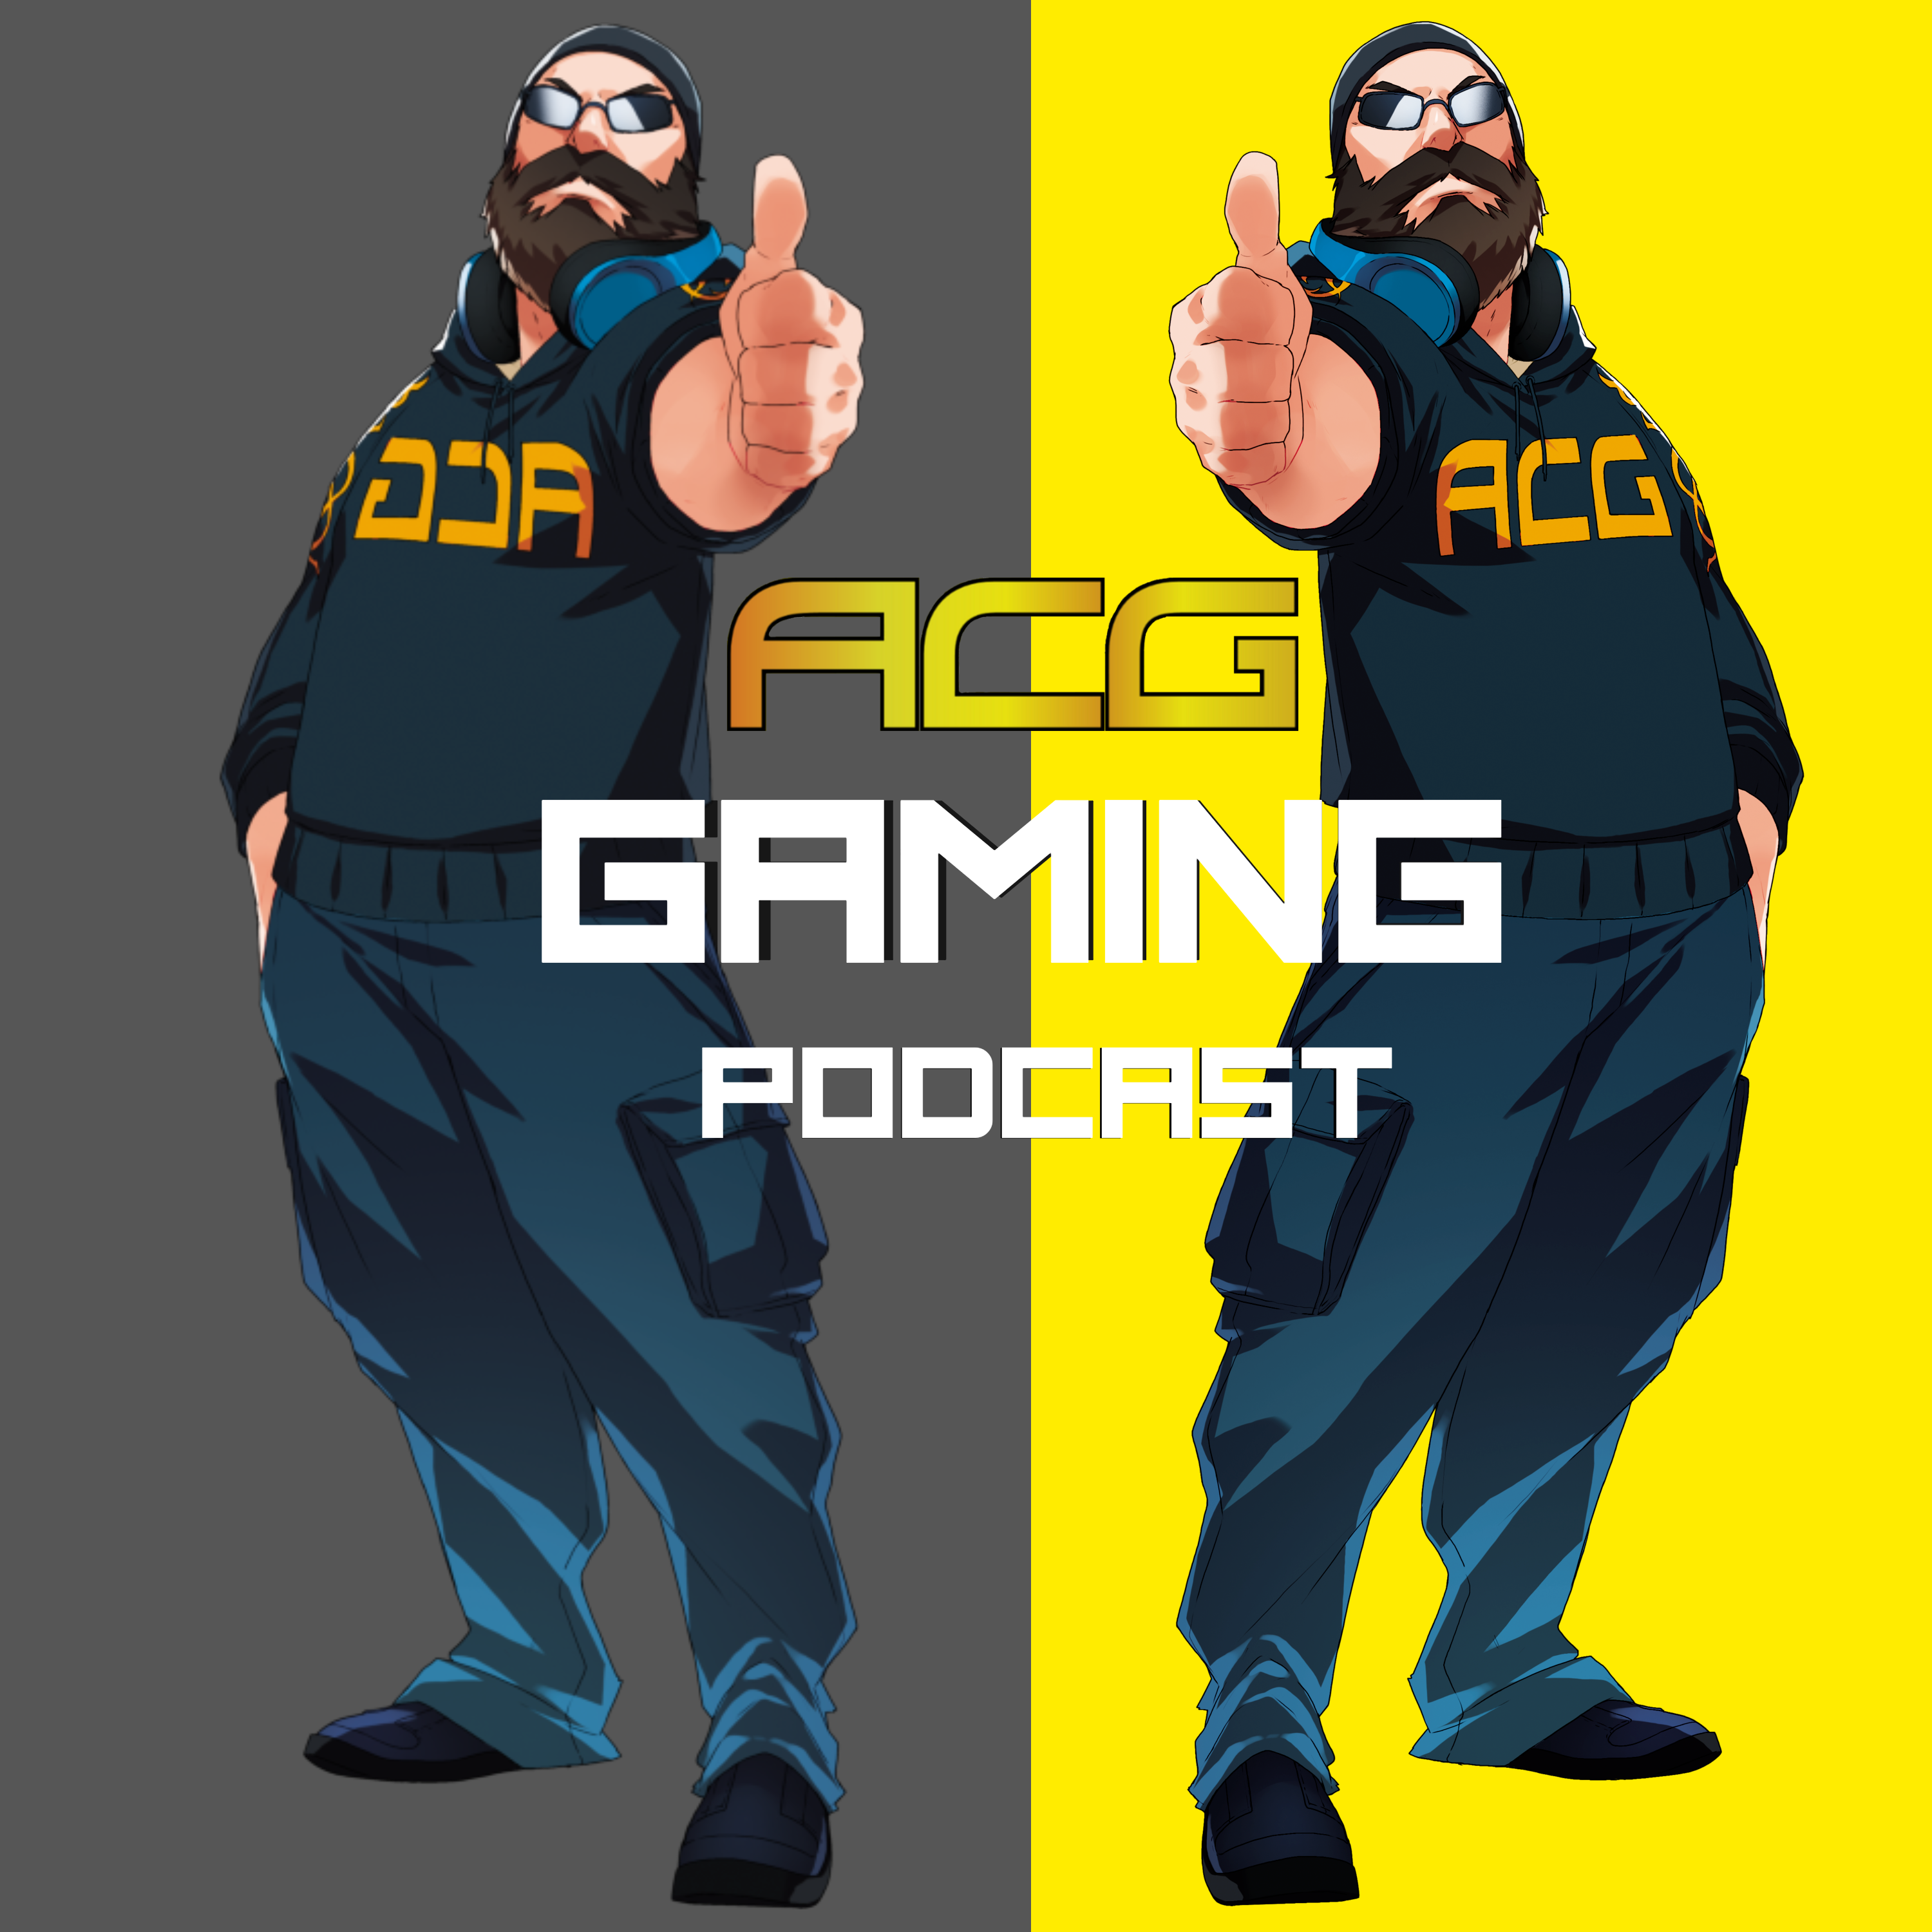 ACG Gaming Podcast #193 ACG Blathercast - Ubisoft PR Springs Leaks, Deadly Premonition FPS Peaks, Tencent and Warframe Deal Reeks, And Karak Hate Reaches Peak